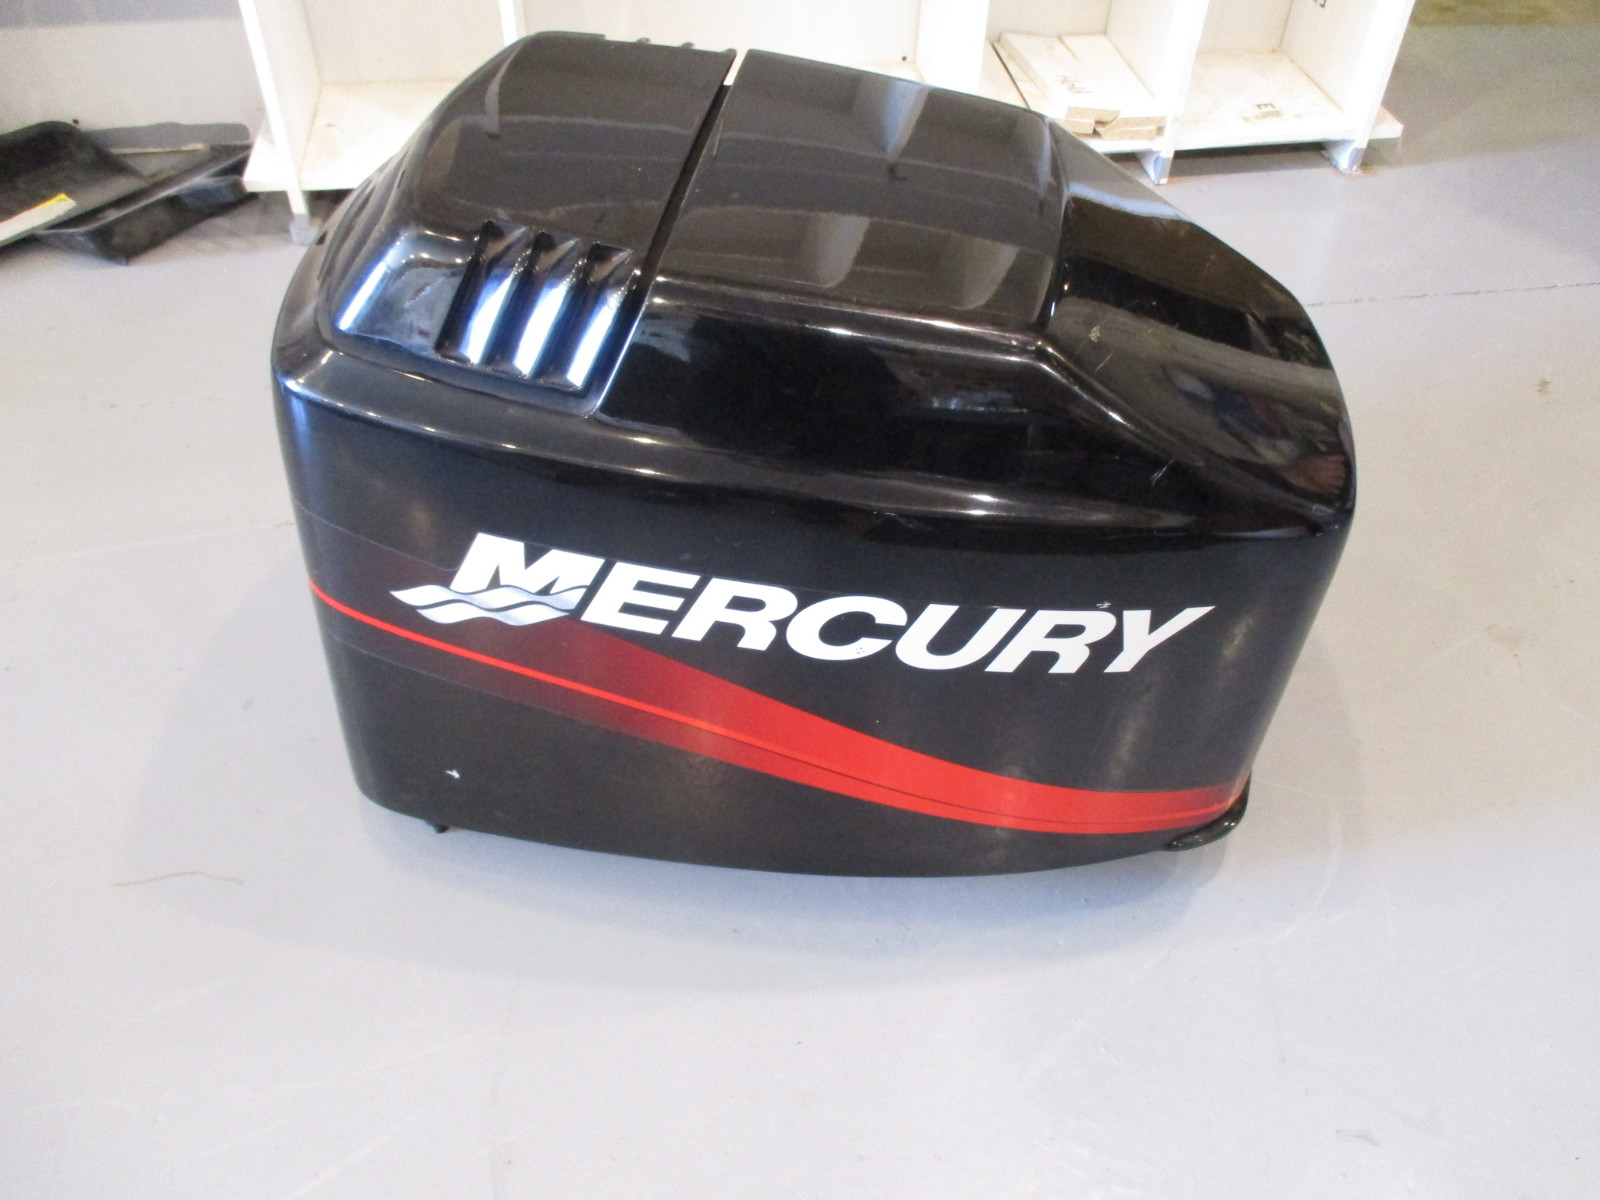 4021 827328t7 mercury 135 hp outboard top cowling engine for Mercury outboard motor cowling